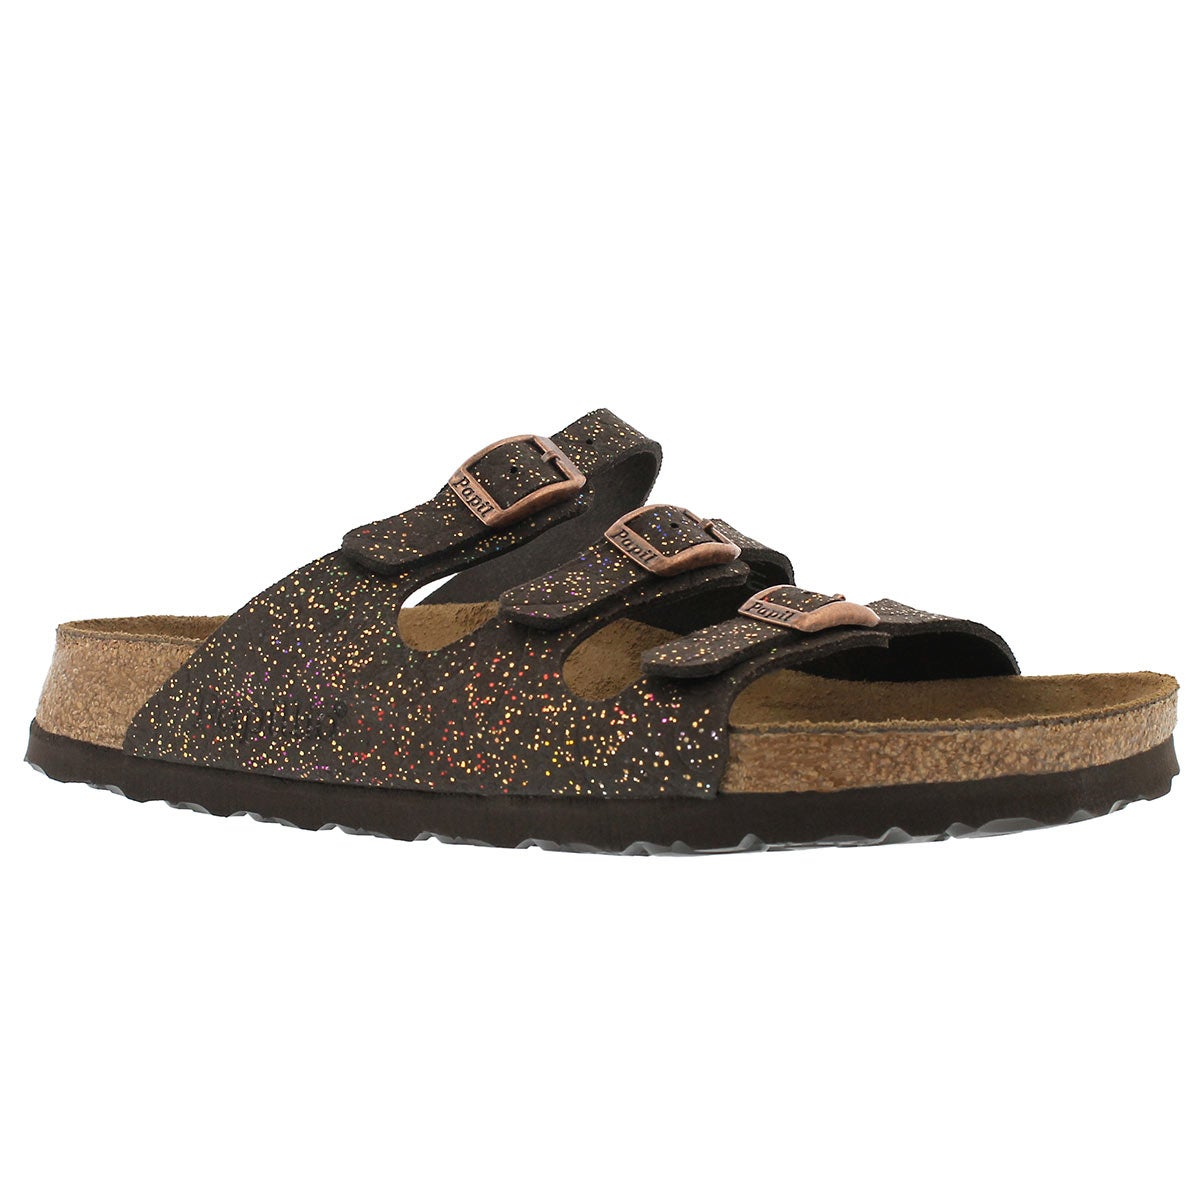 Women's FLORIDA grace brown sandals - Narrow